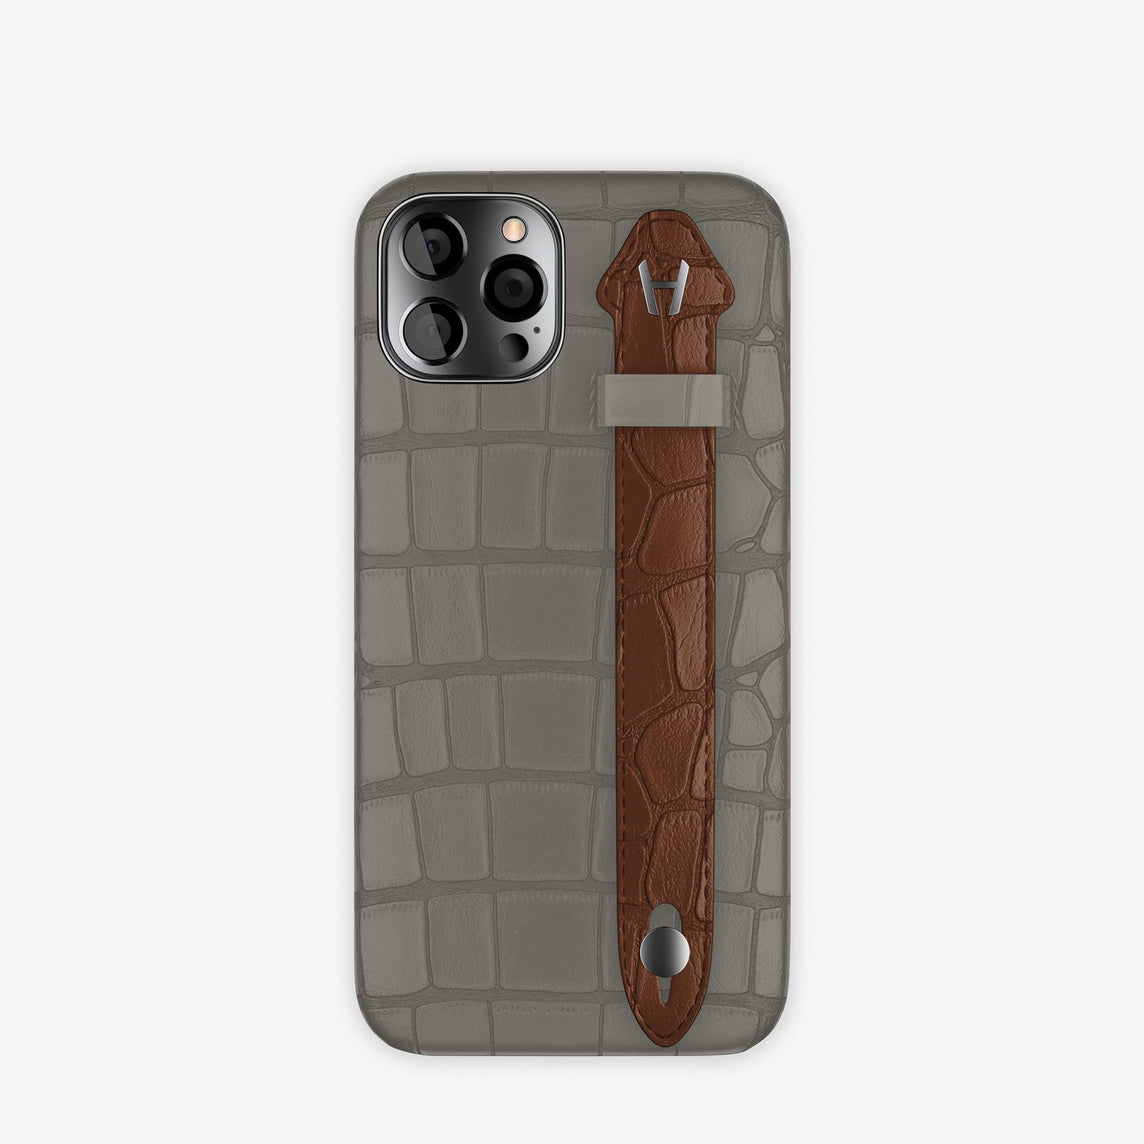 Alligator Side Finger Case iPhone 12 & iPhone 12 Pro | Grey Pearl/Brown Chocolat -Black